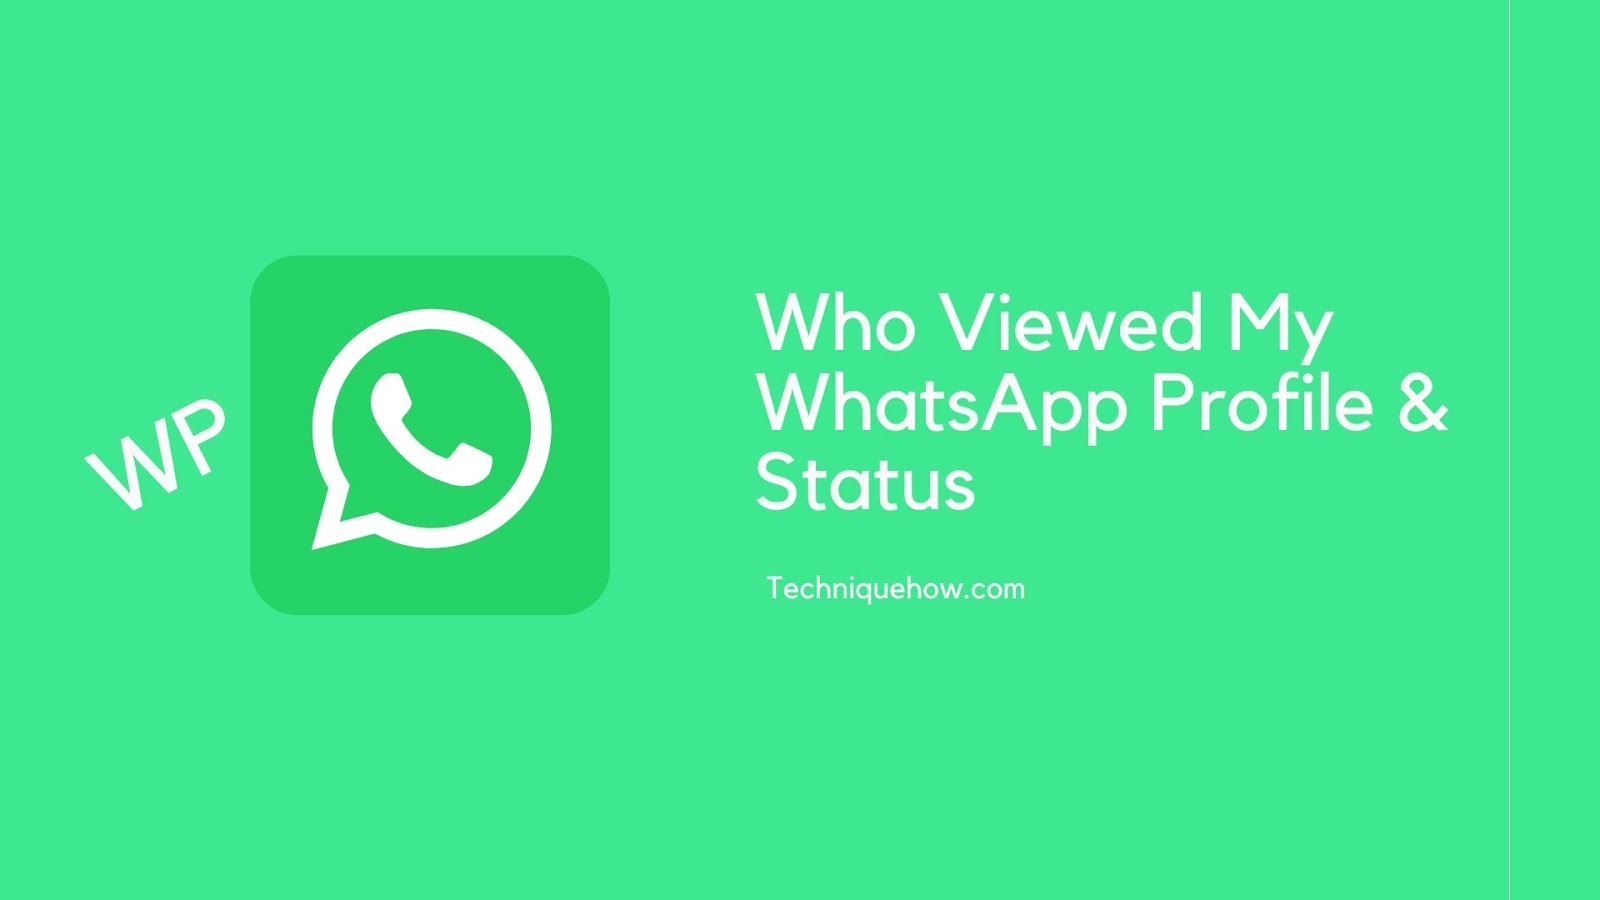 who viewed my whatsapp profile